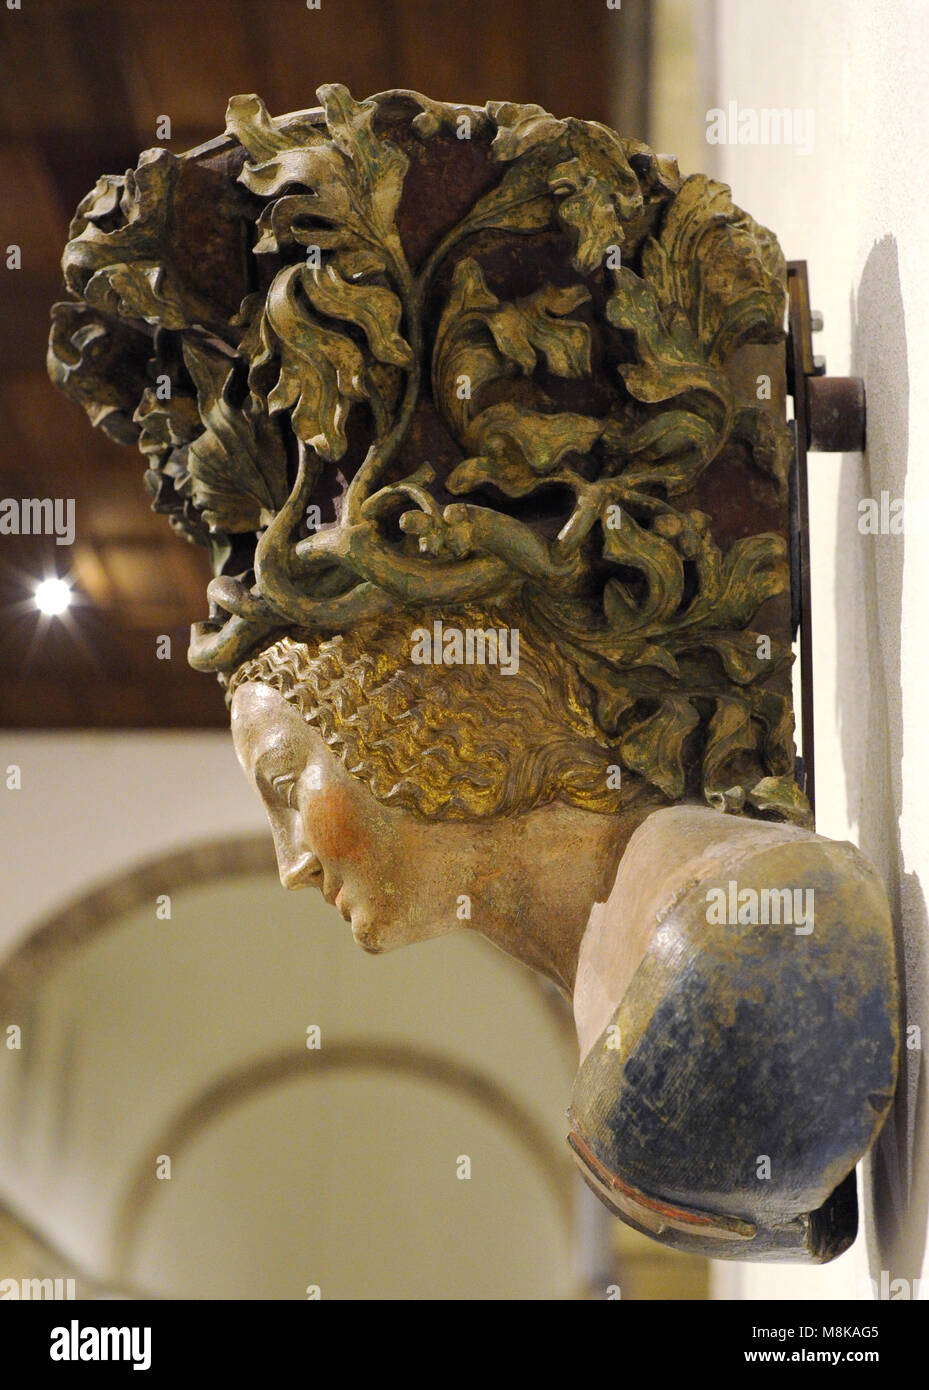 Corbel bust with the Parler crest. Cologne workshop of the Parlers, c. 1390. Sandstone, polychrome. Museum Schnütgen. - Stock Image